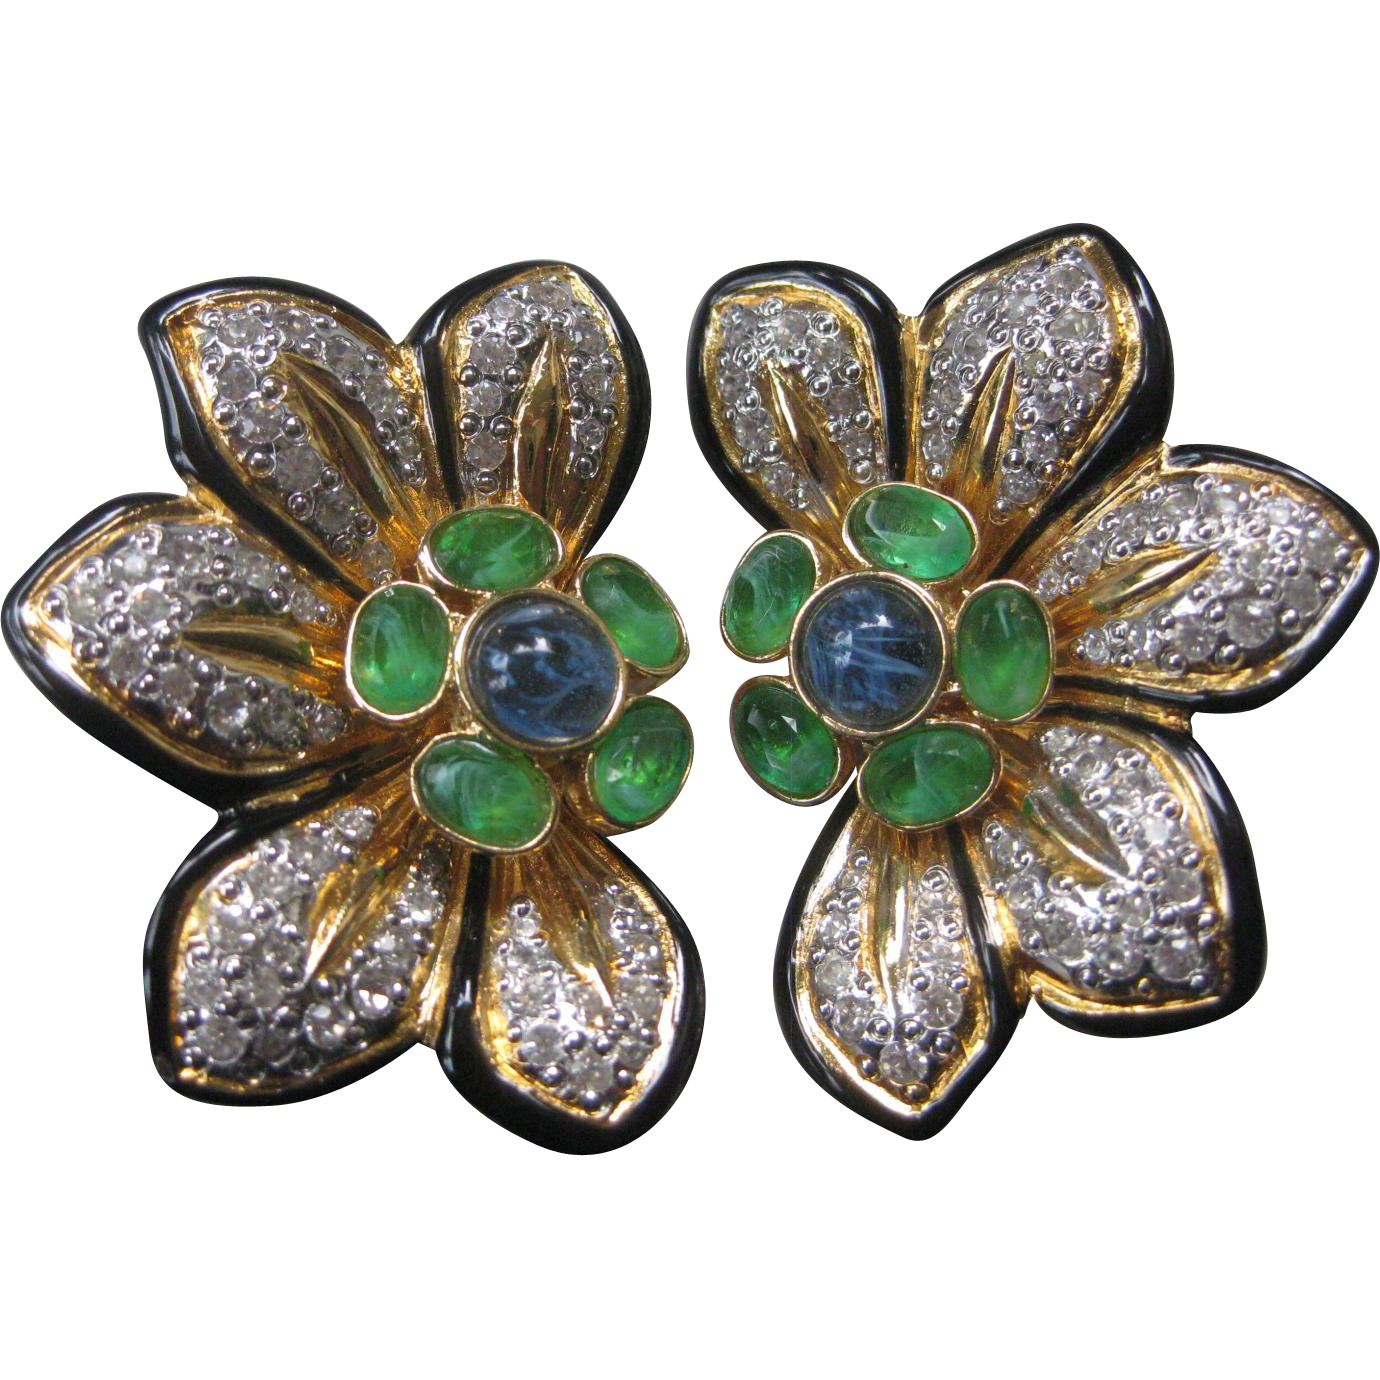 Vogue Bijoux Stunning Marbled Stones Enamel & Rhinestones large Flower Earrings